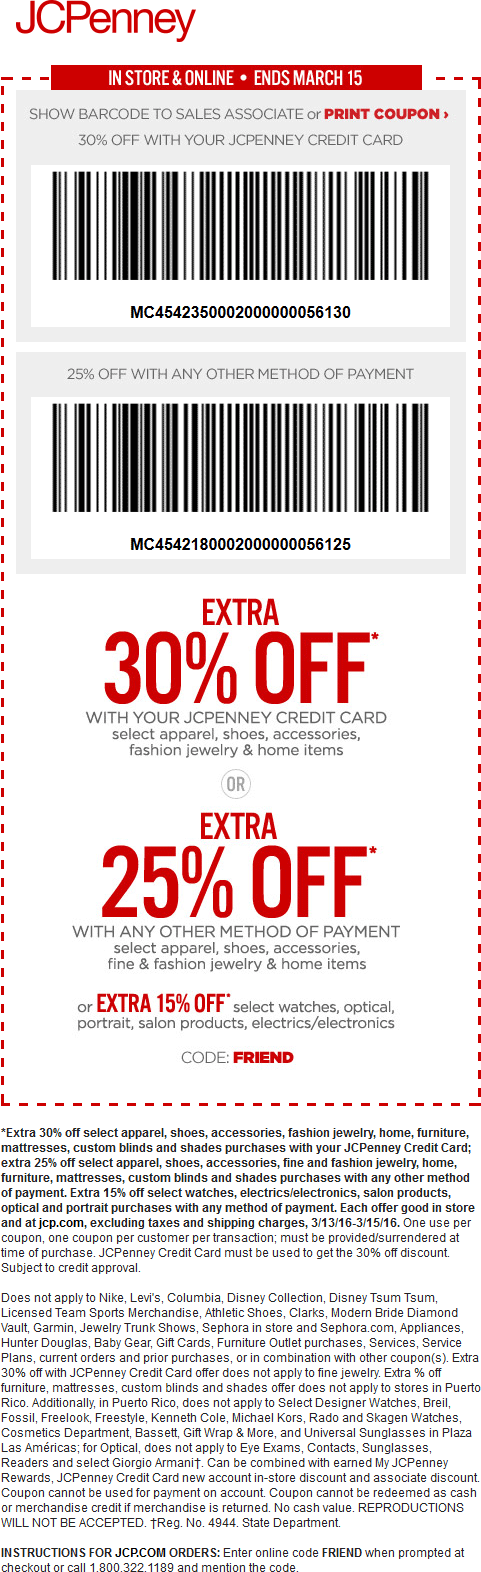 JCPenney Coupon November 2017 25% off at JCPenney, or online via promo code FRIEND